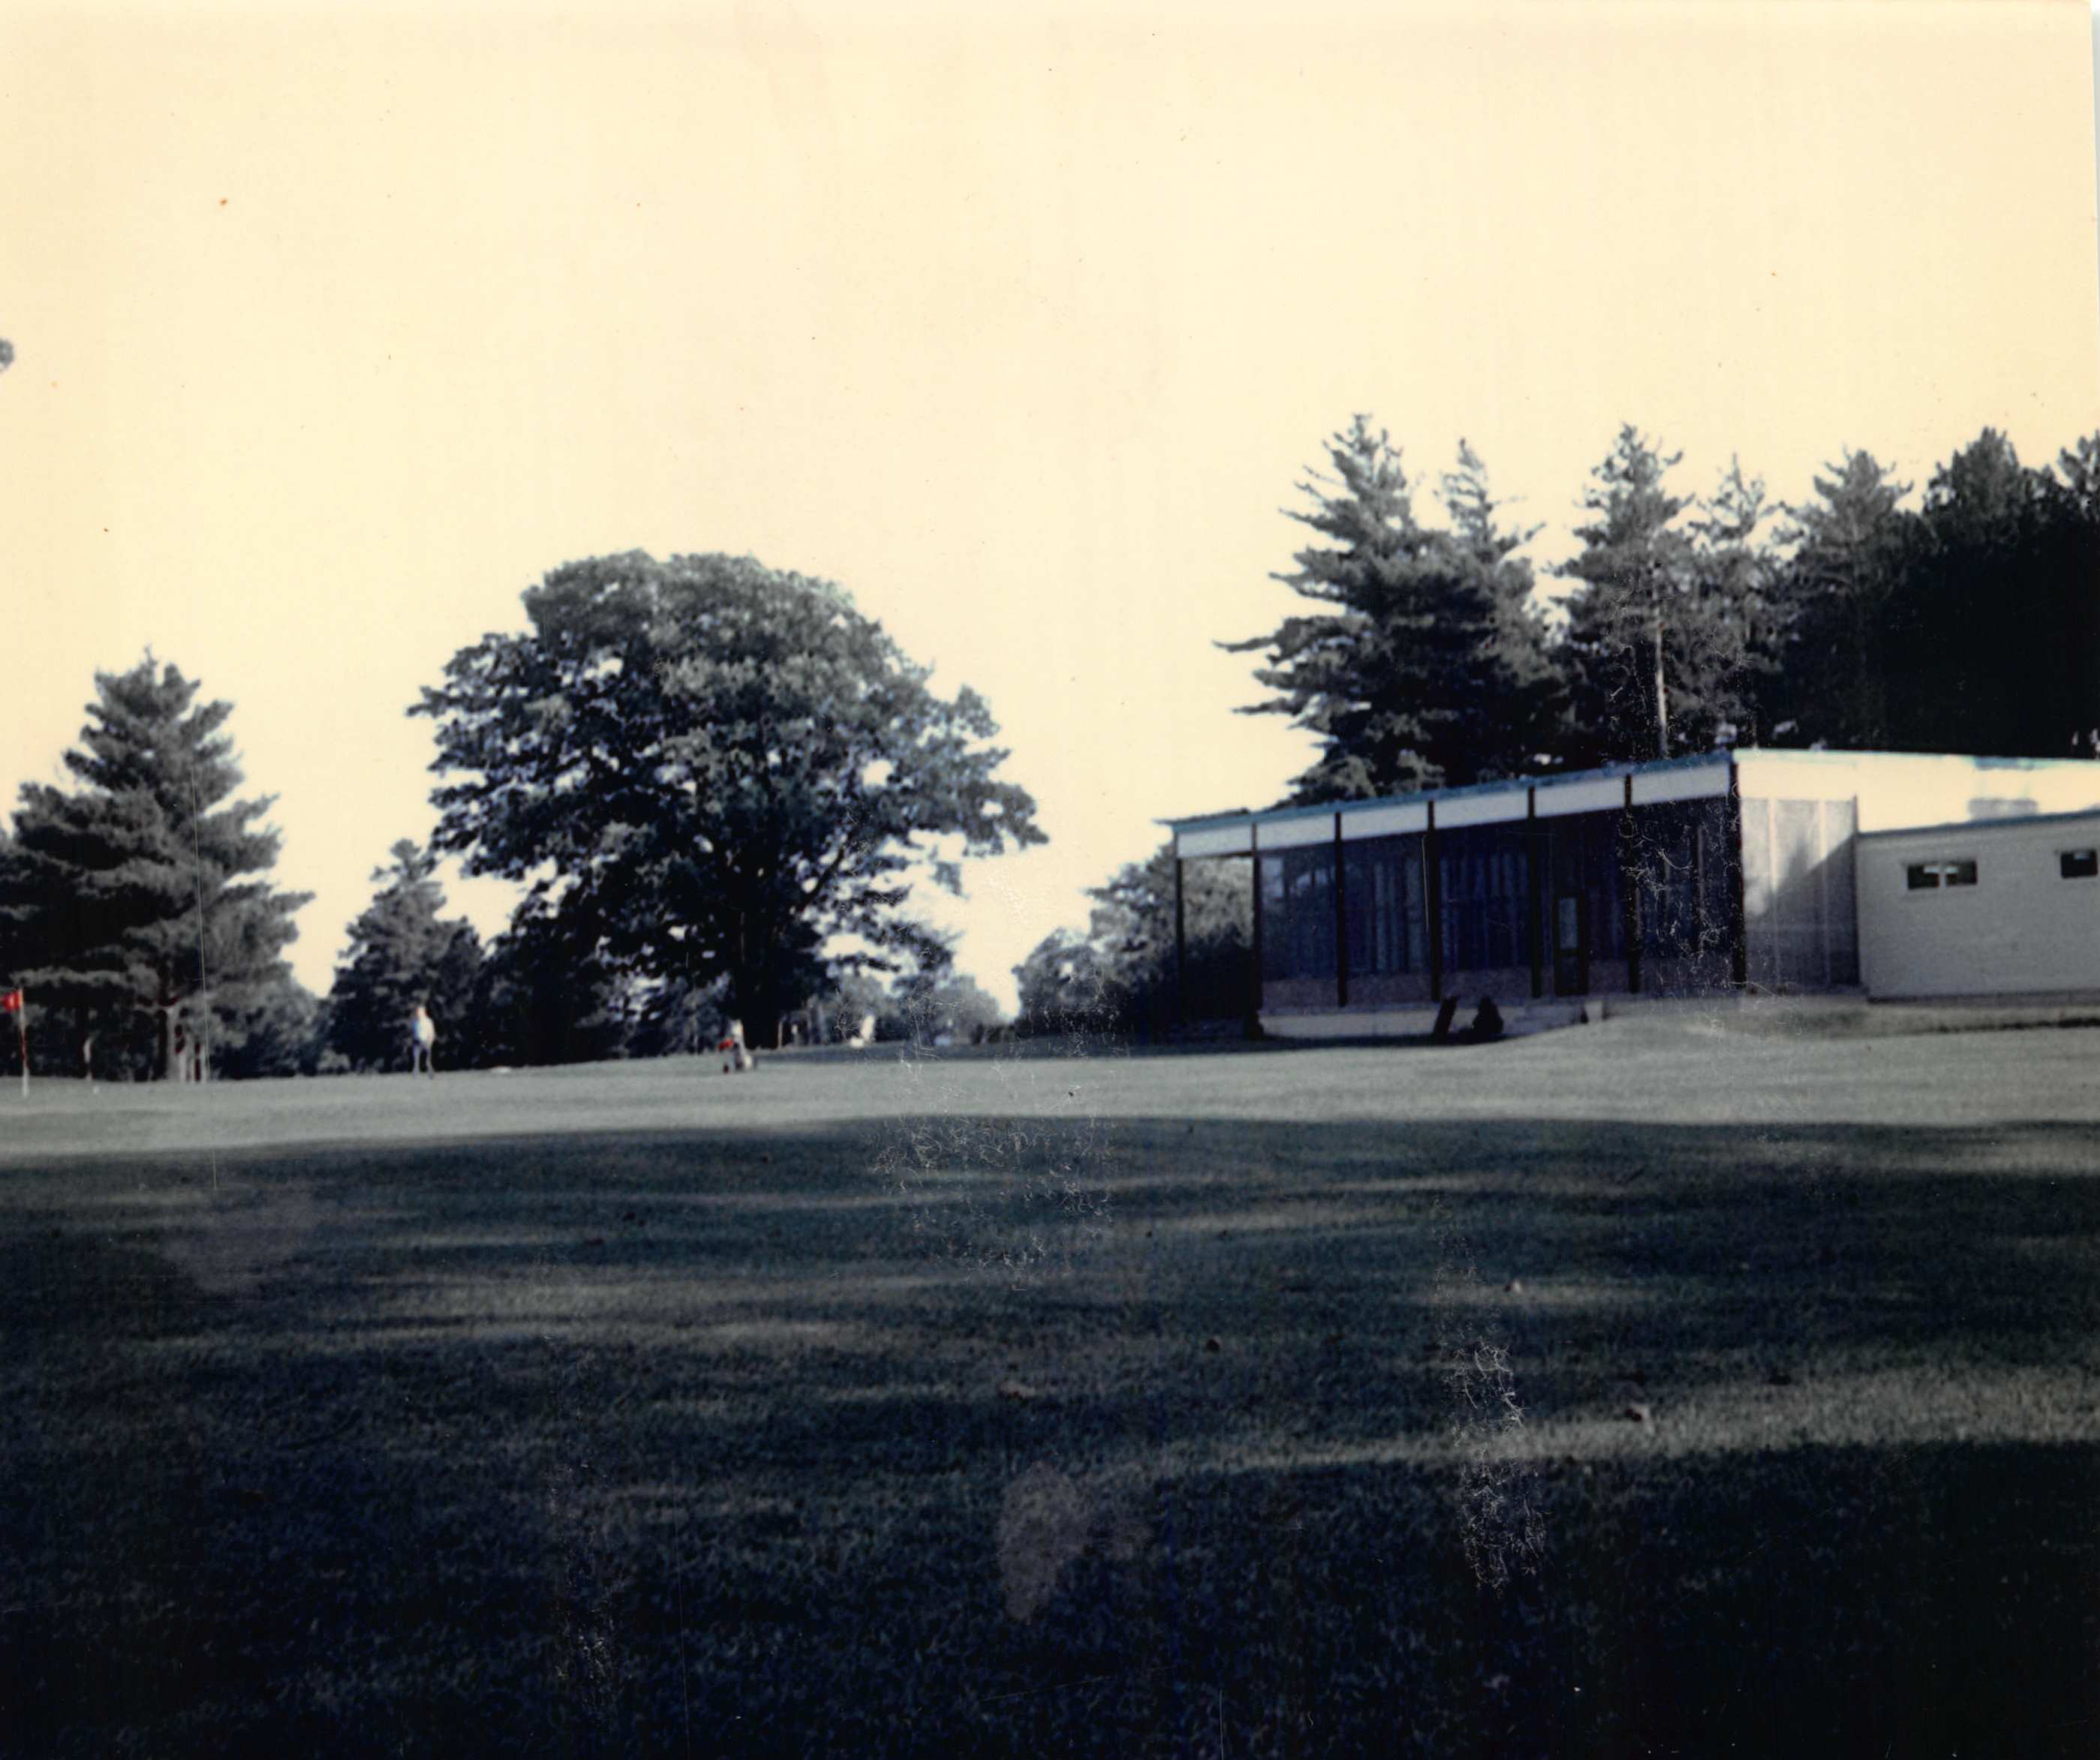 1965-c-Bayfield-The 9th green at the Barrie Country Club on Sunnidale Road-A